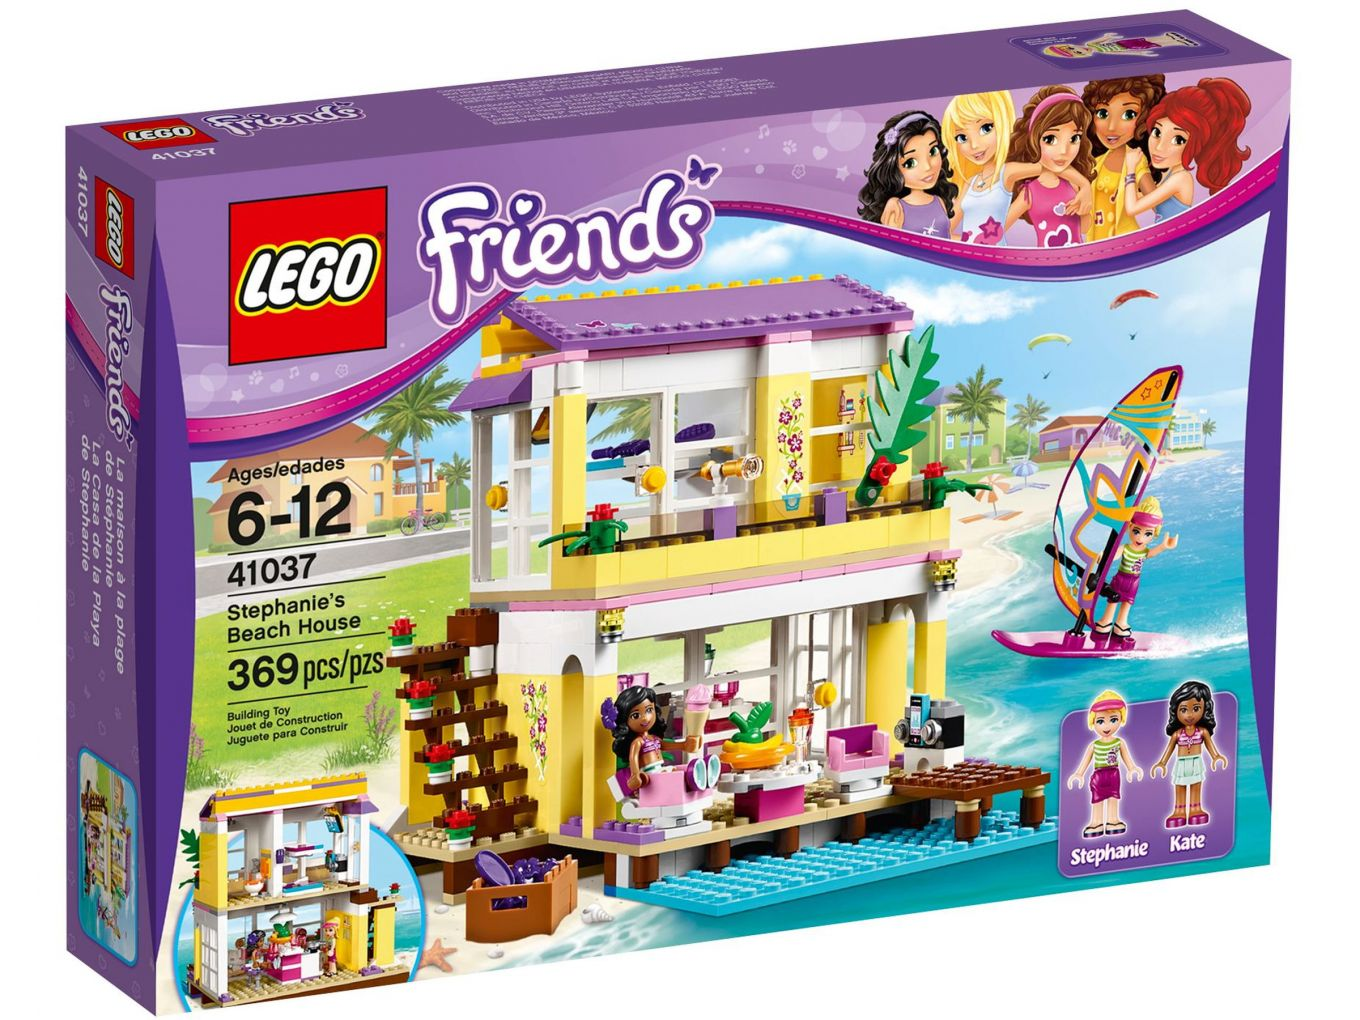 LEGO Friends 41037 Stephanie Strandhuis